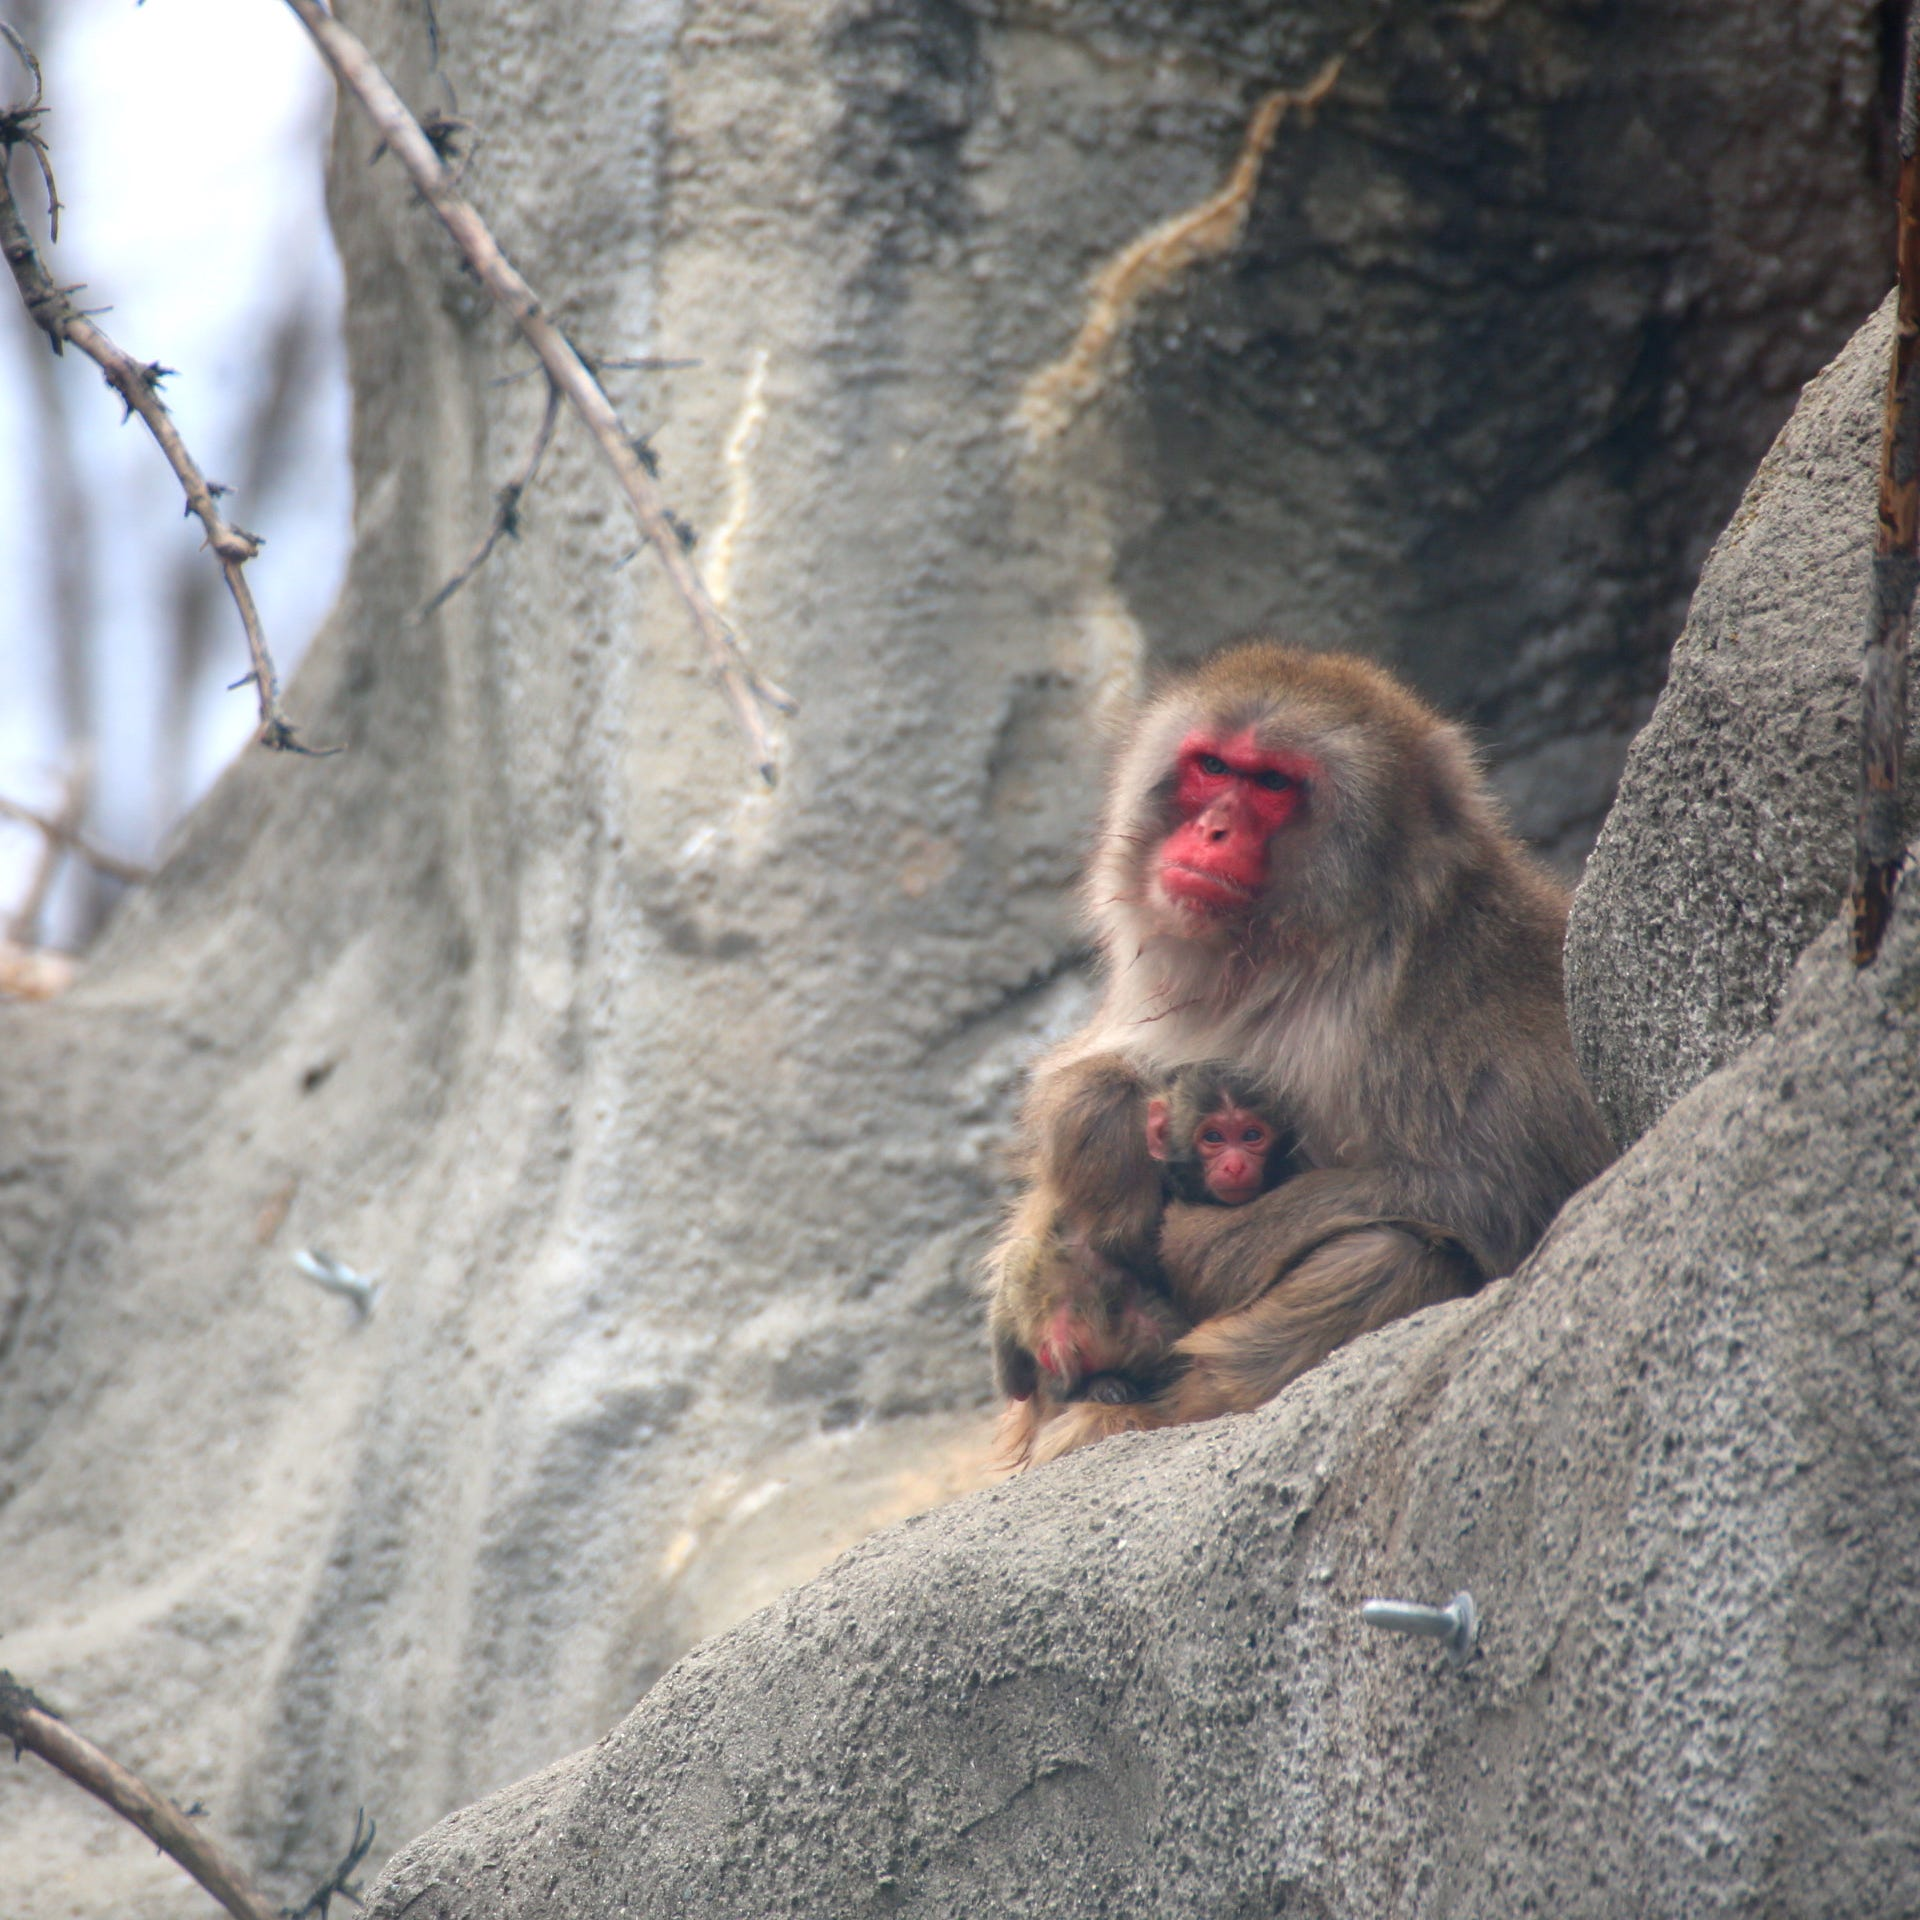 Photos: First look at snow monkey born at Detroit Zoo